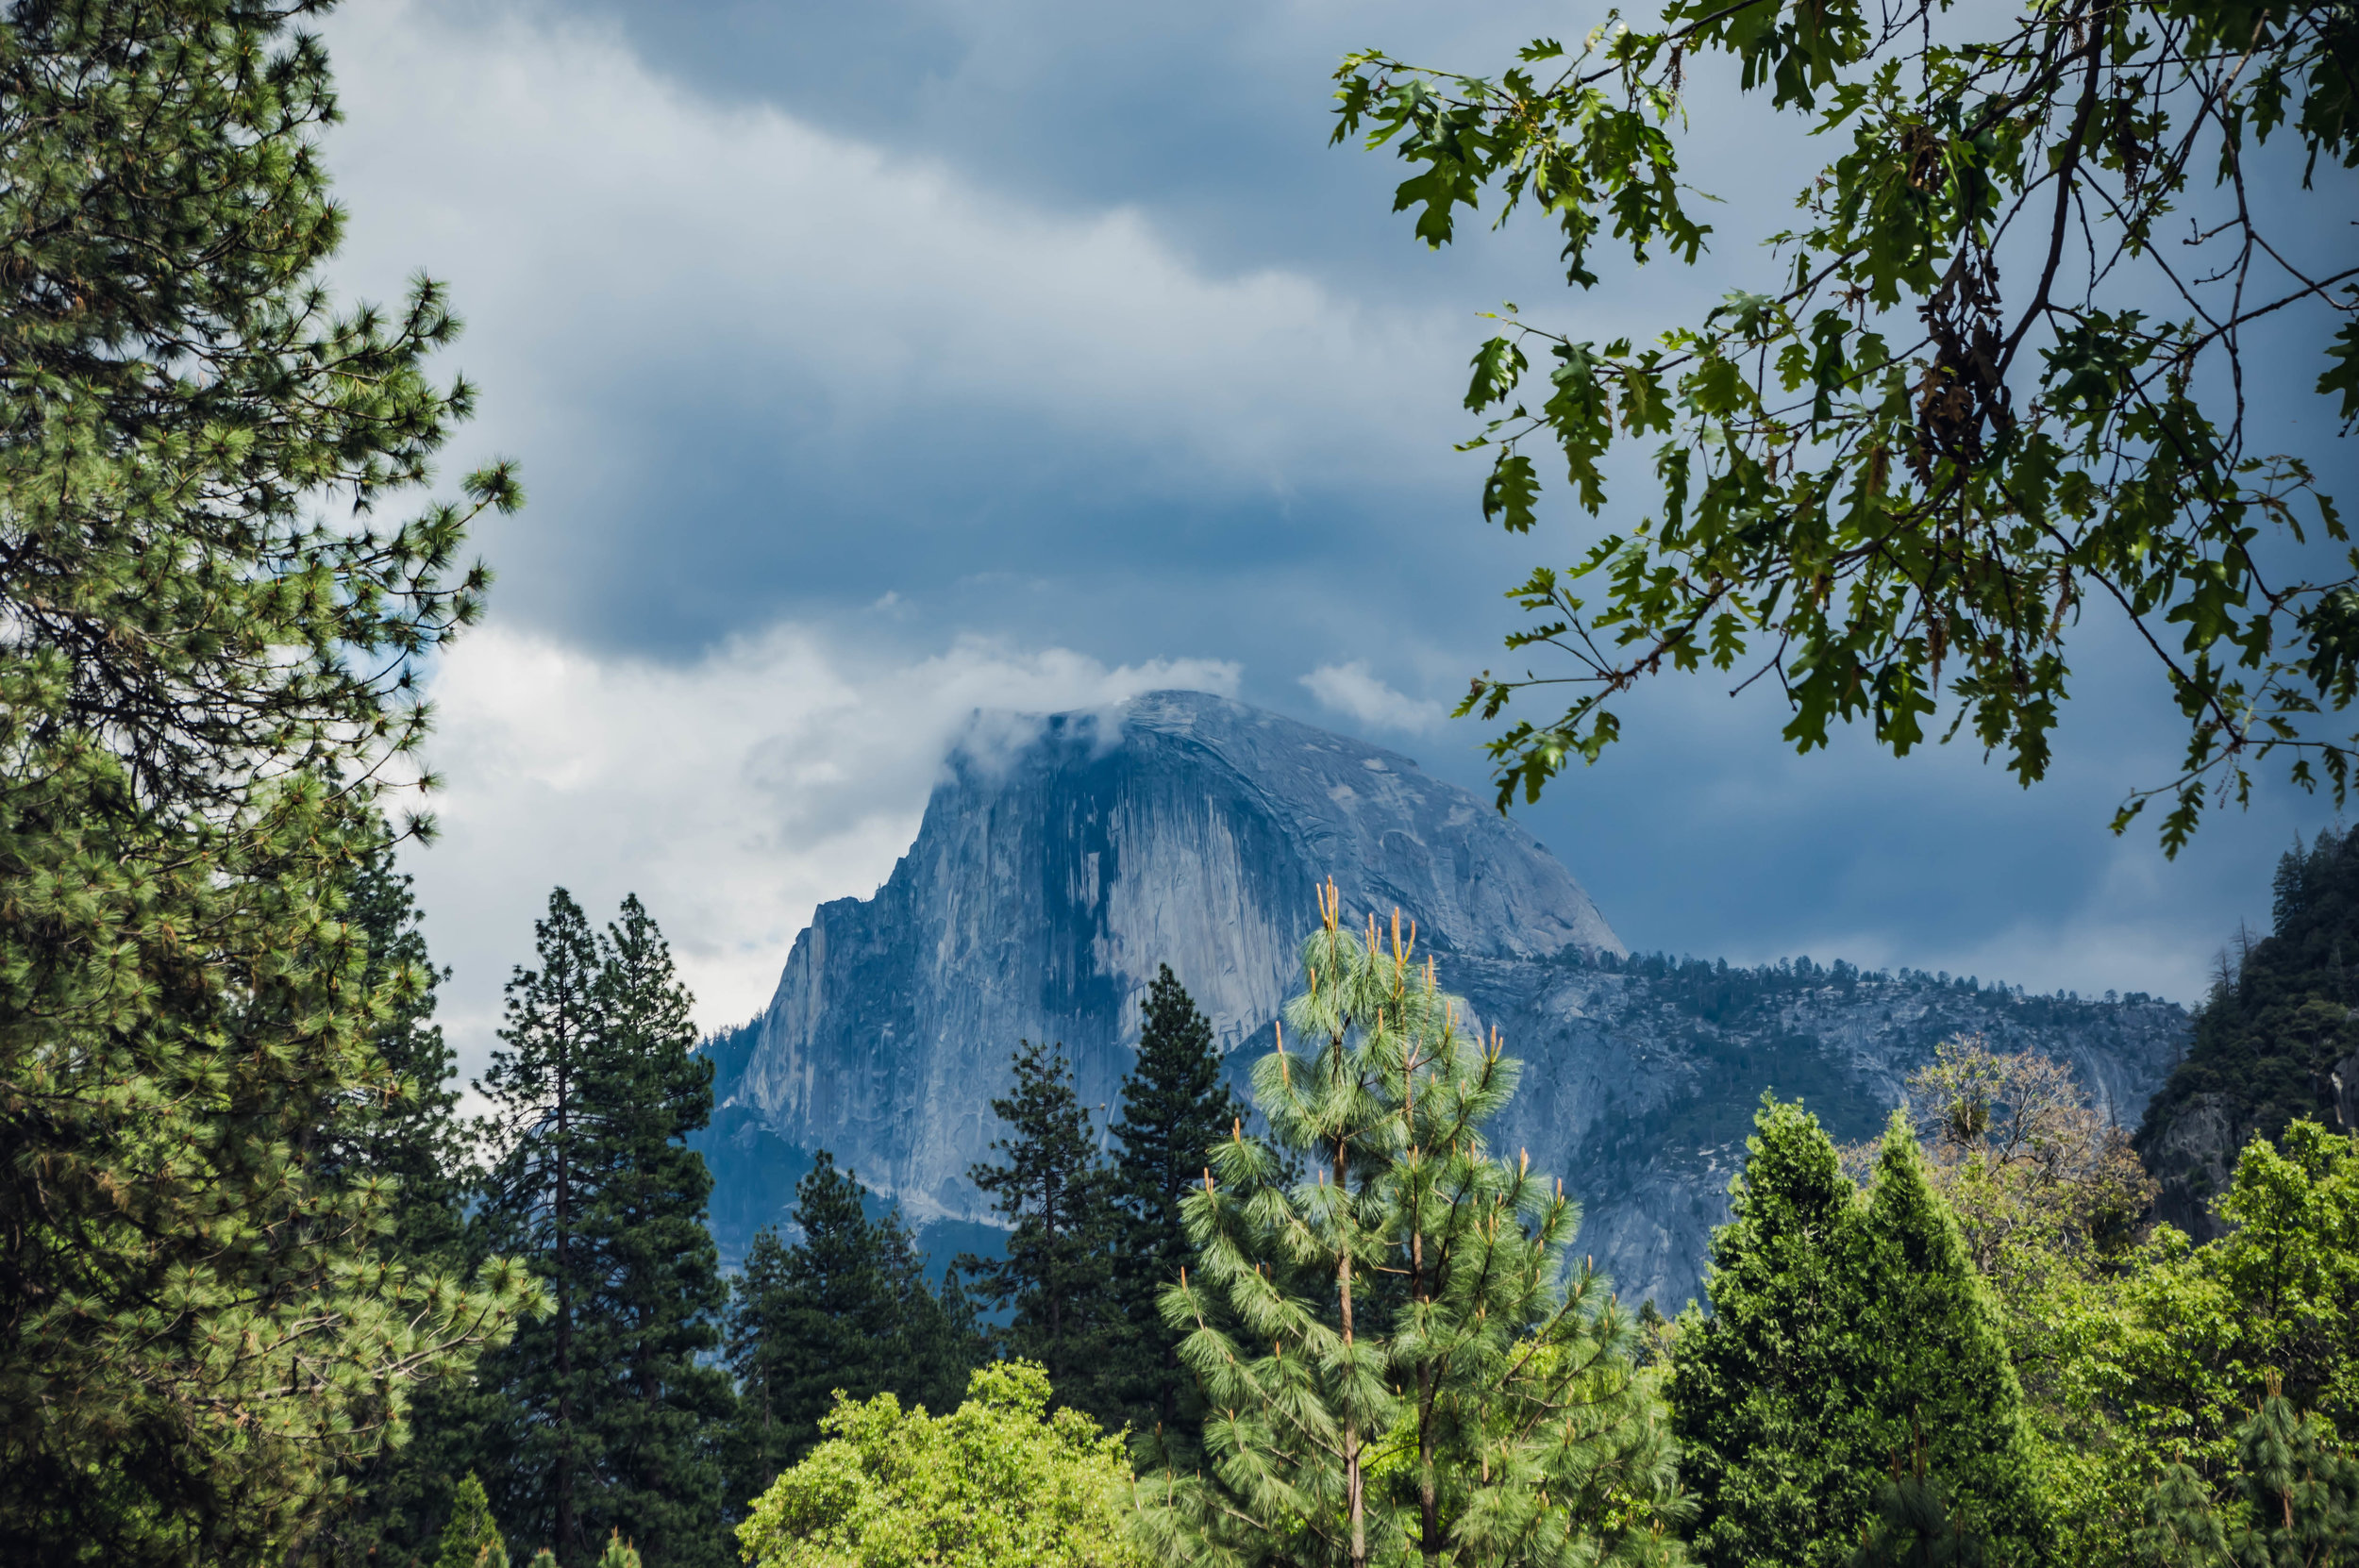 Half Dome as seen from Camp 4